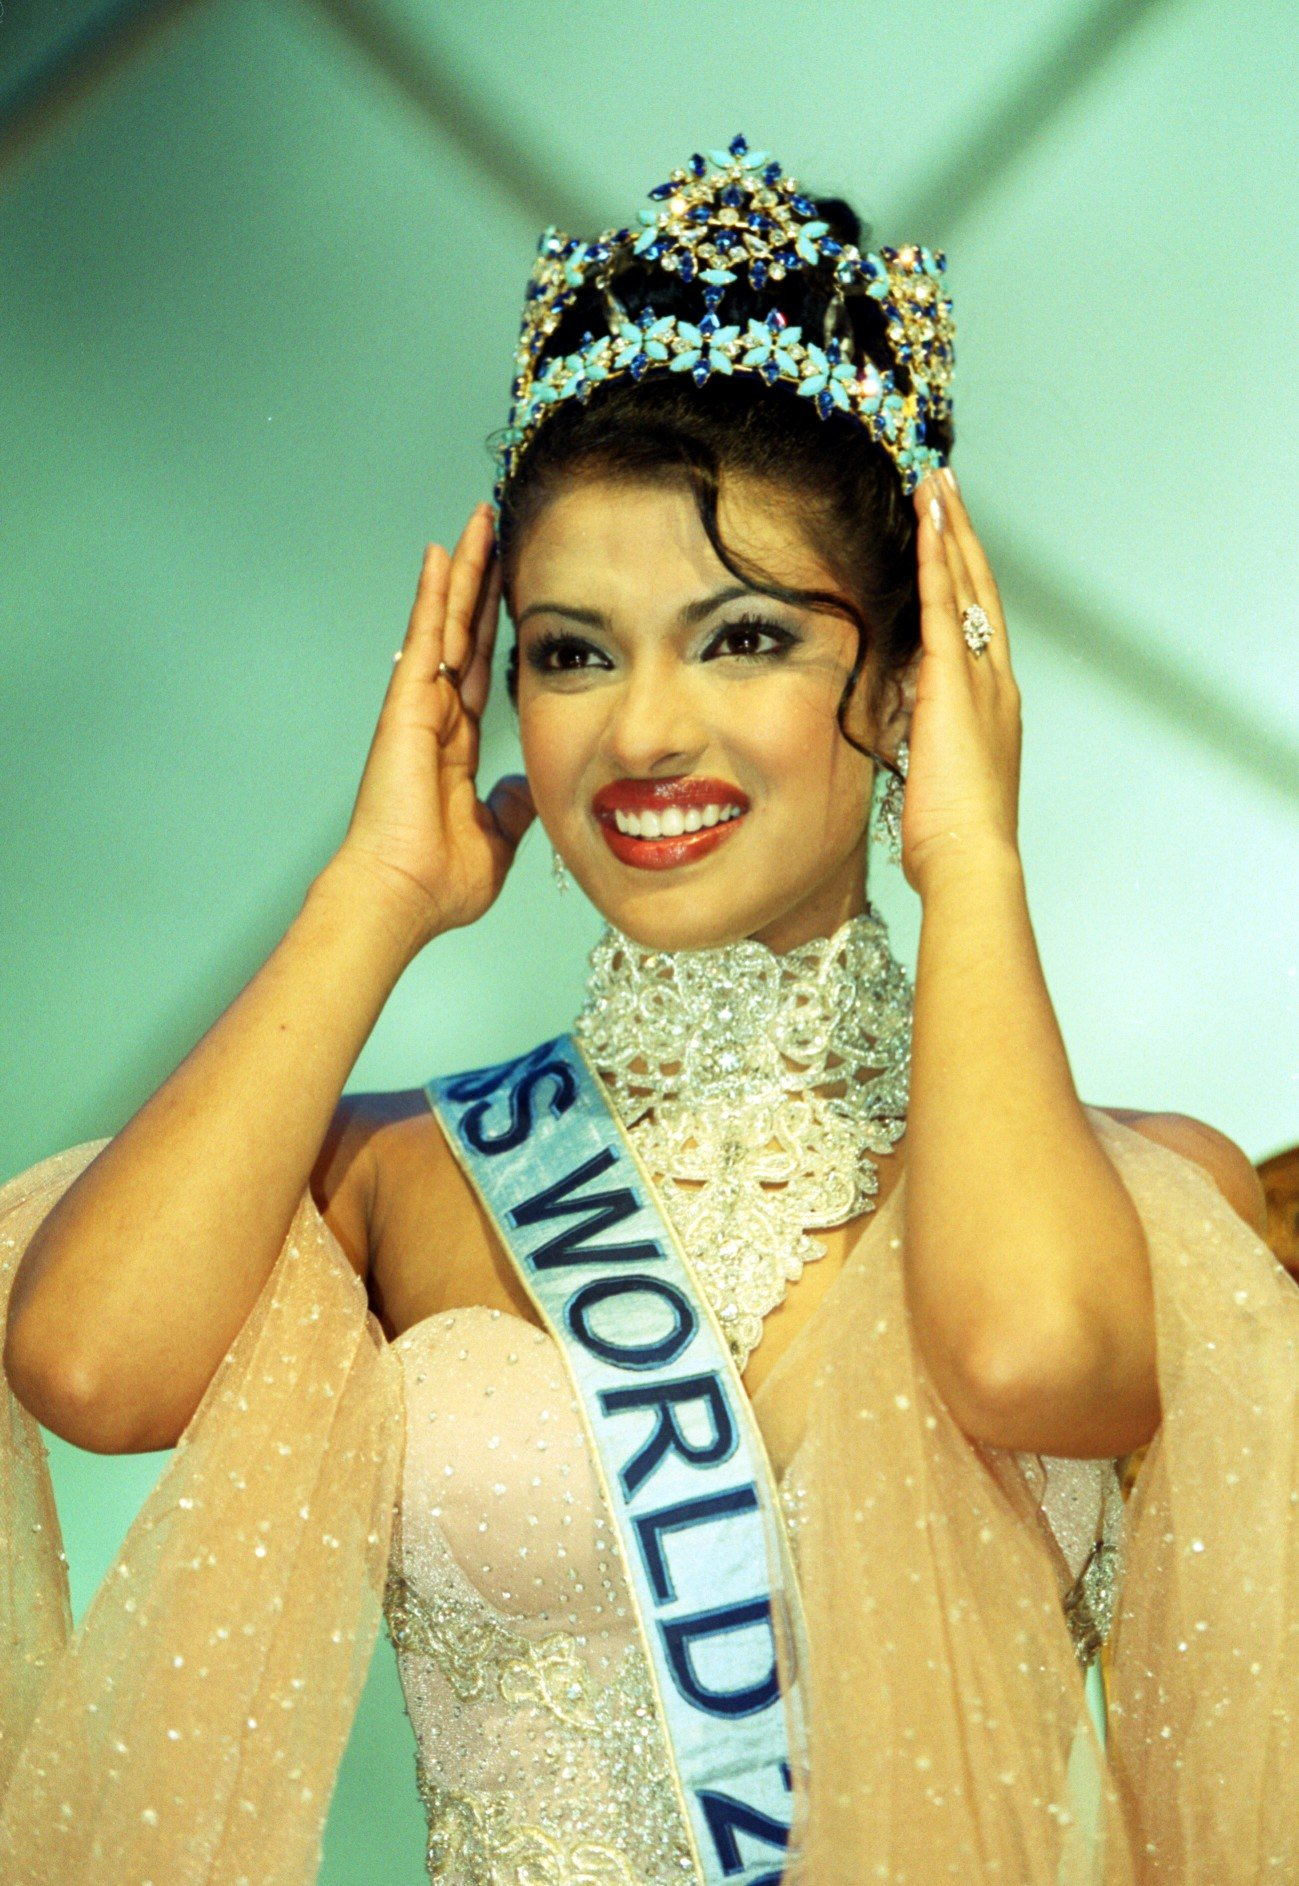 Image Credits: Getty Images | The former Miss World, Priyanka Chopra at her crowning ceremony in 2000.